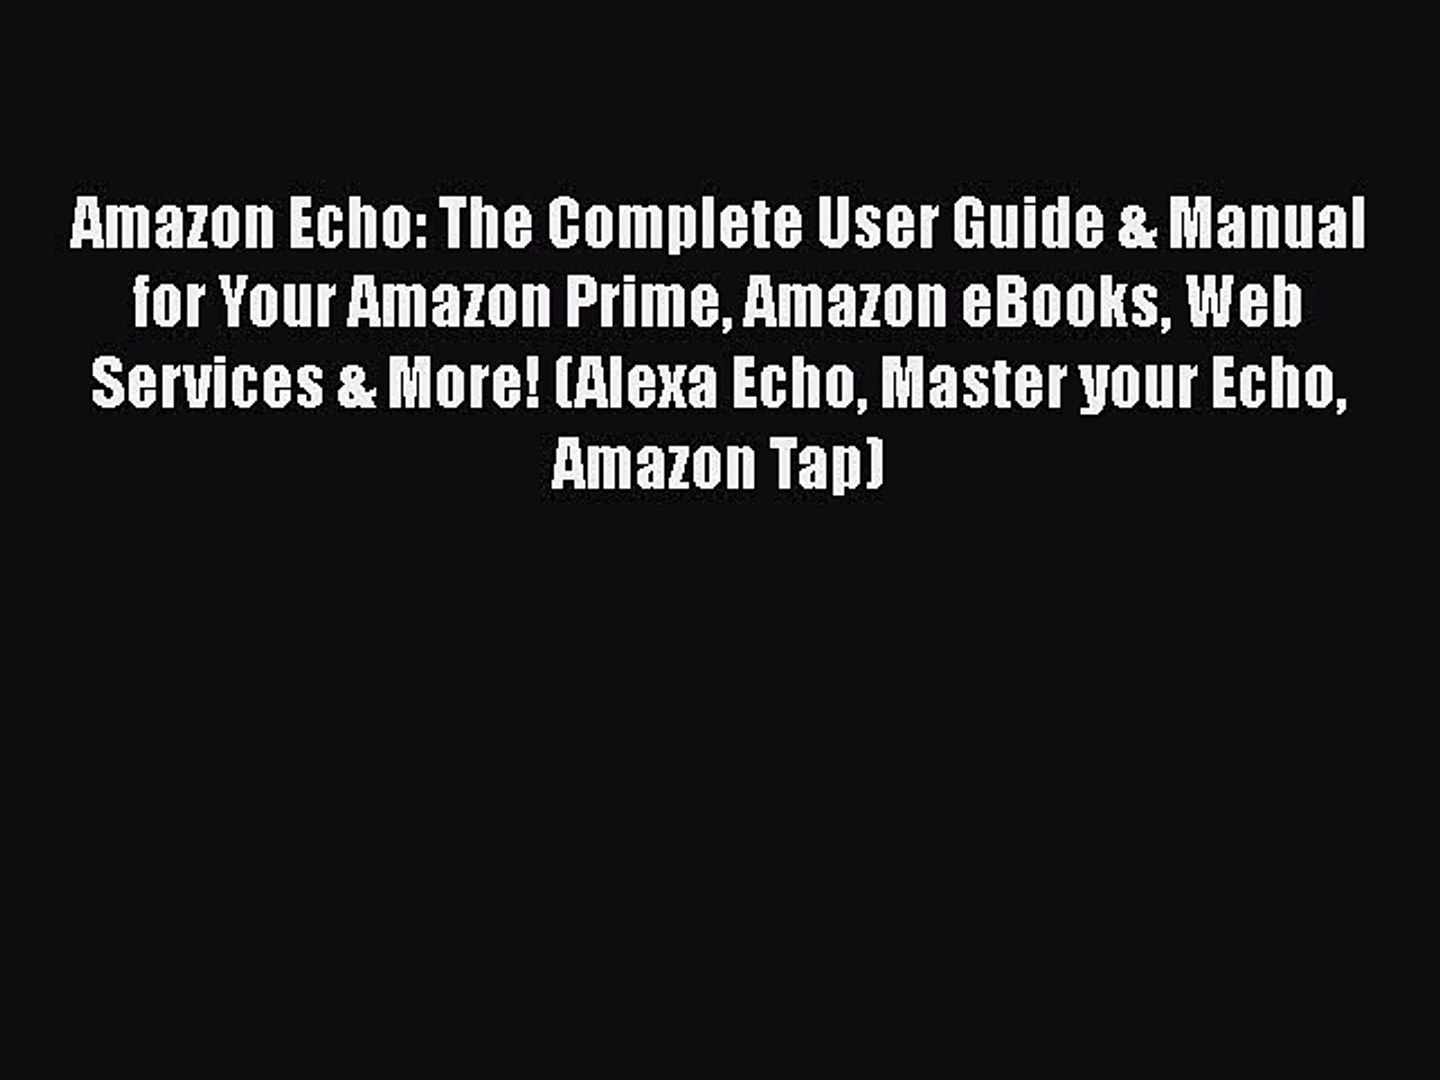 Read Amazon Echo: The Complete User Guide & Manual for Your Amazon Prime Amazon eBooks Web